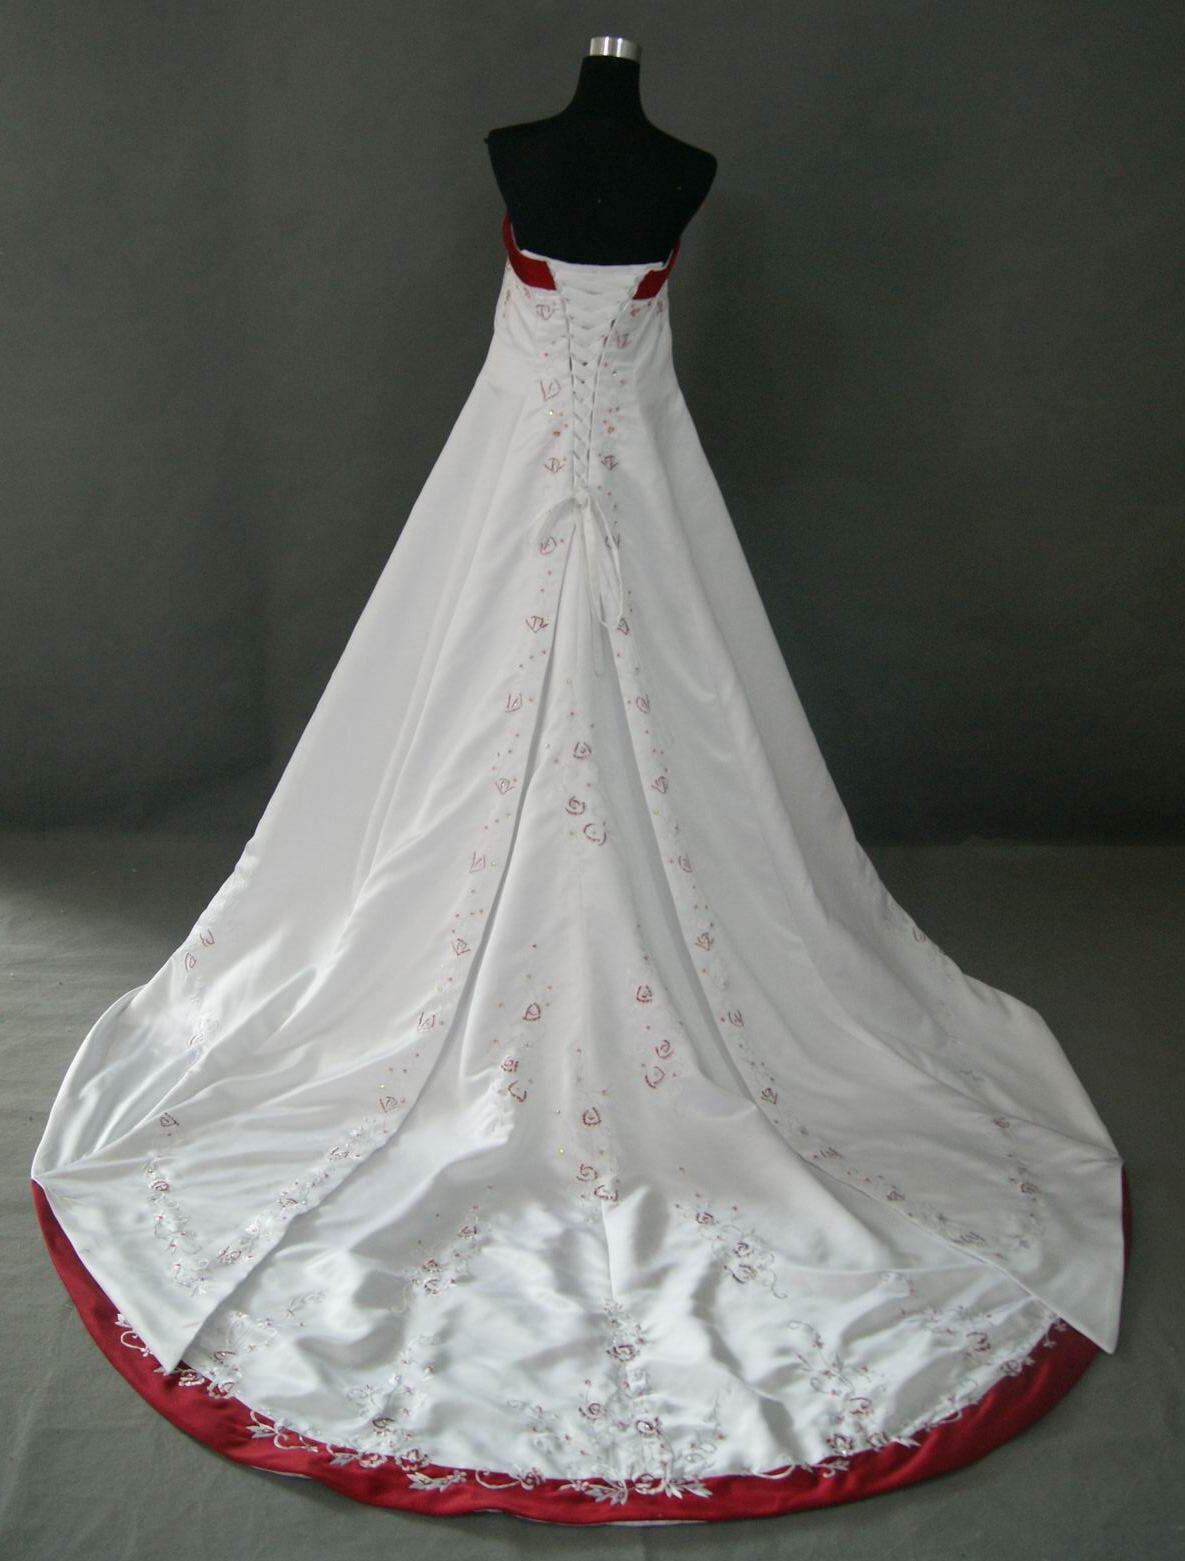 ... Wedding dress with red embroidered flowers